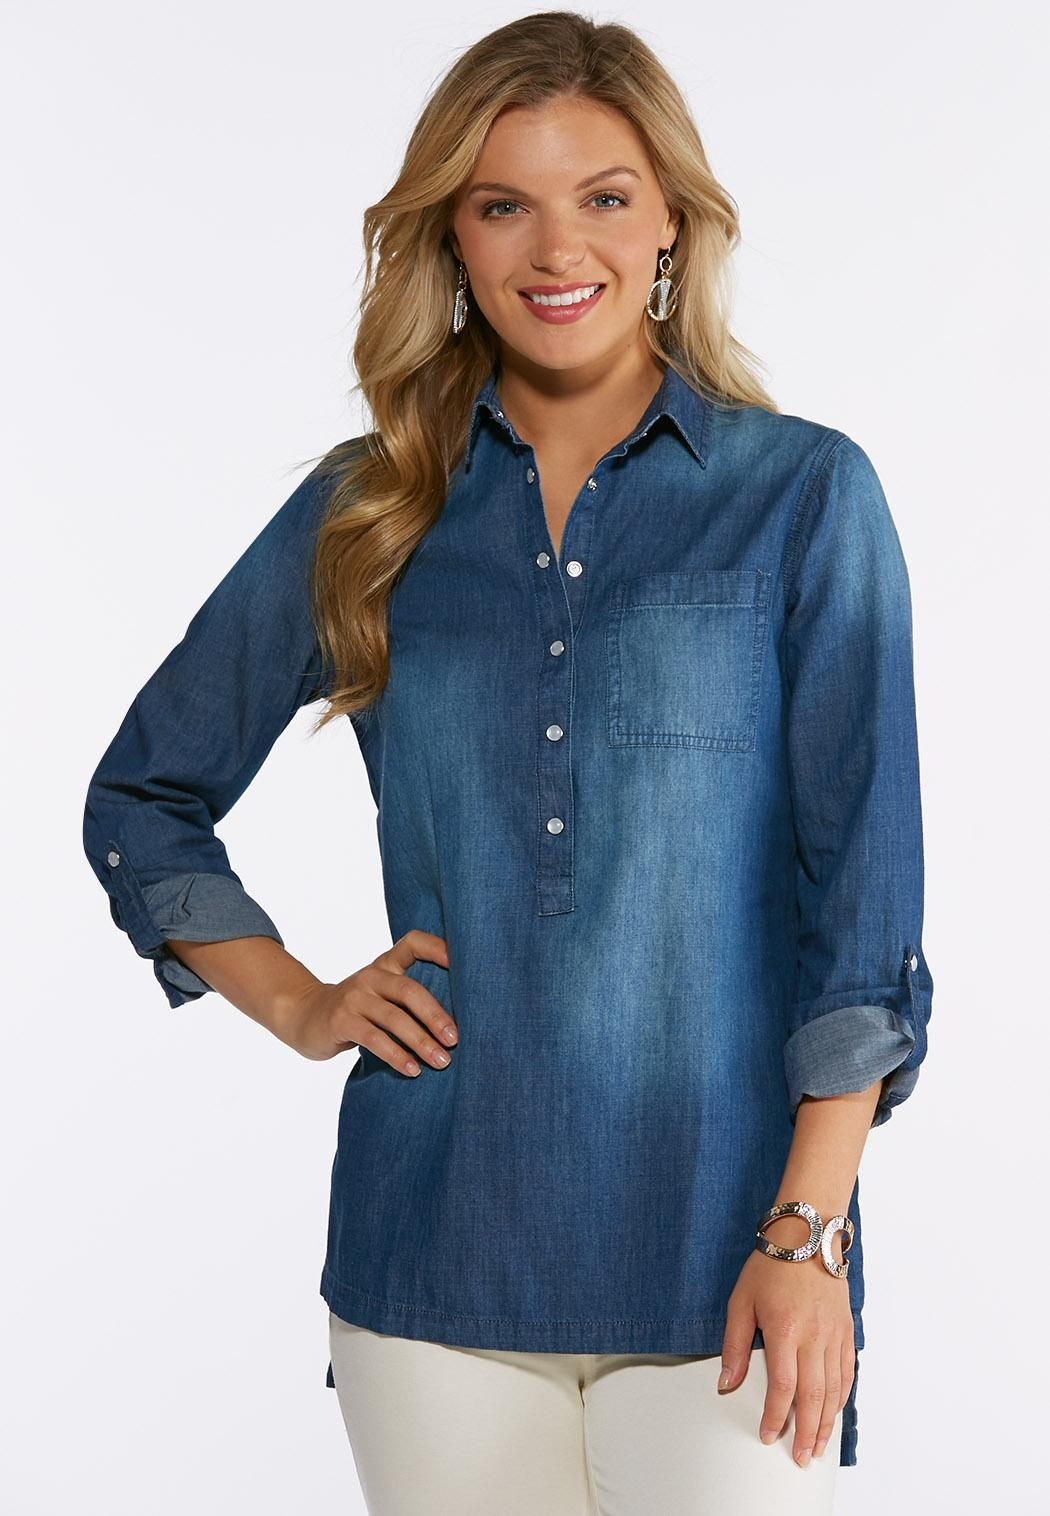 6d851a5d553 Denim Snap Popover Shirt Shirts Cato Fashions in 2019